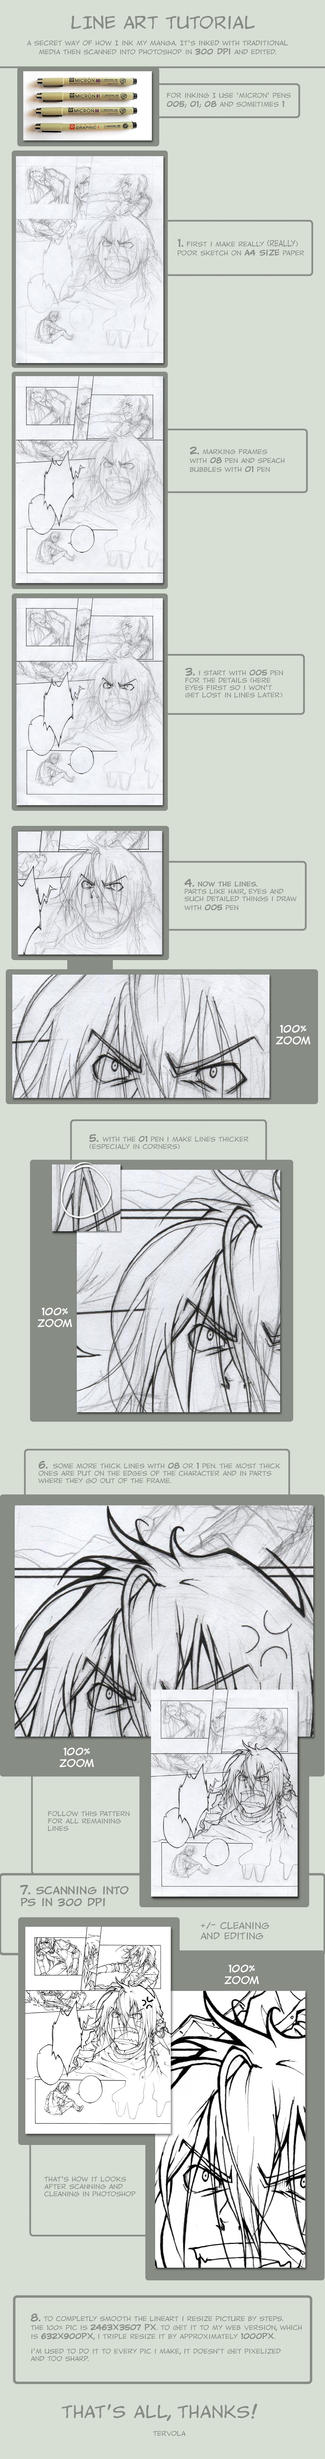 Line Art Tutorial Photo : Line art tutorial comic by tervola on deviantart